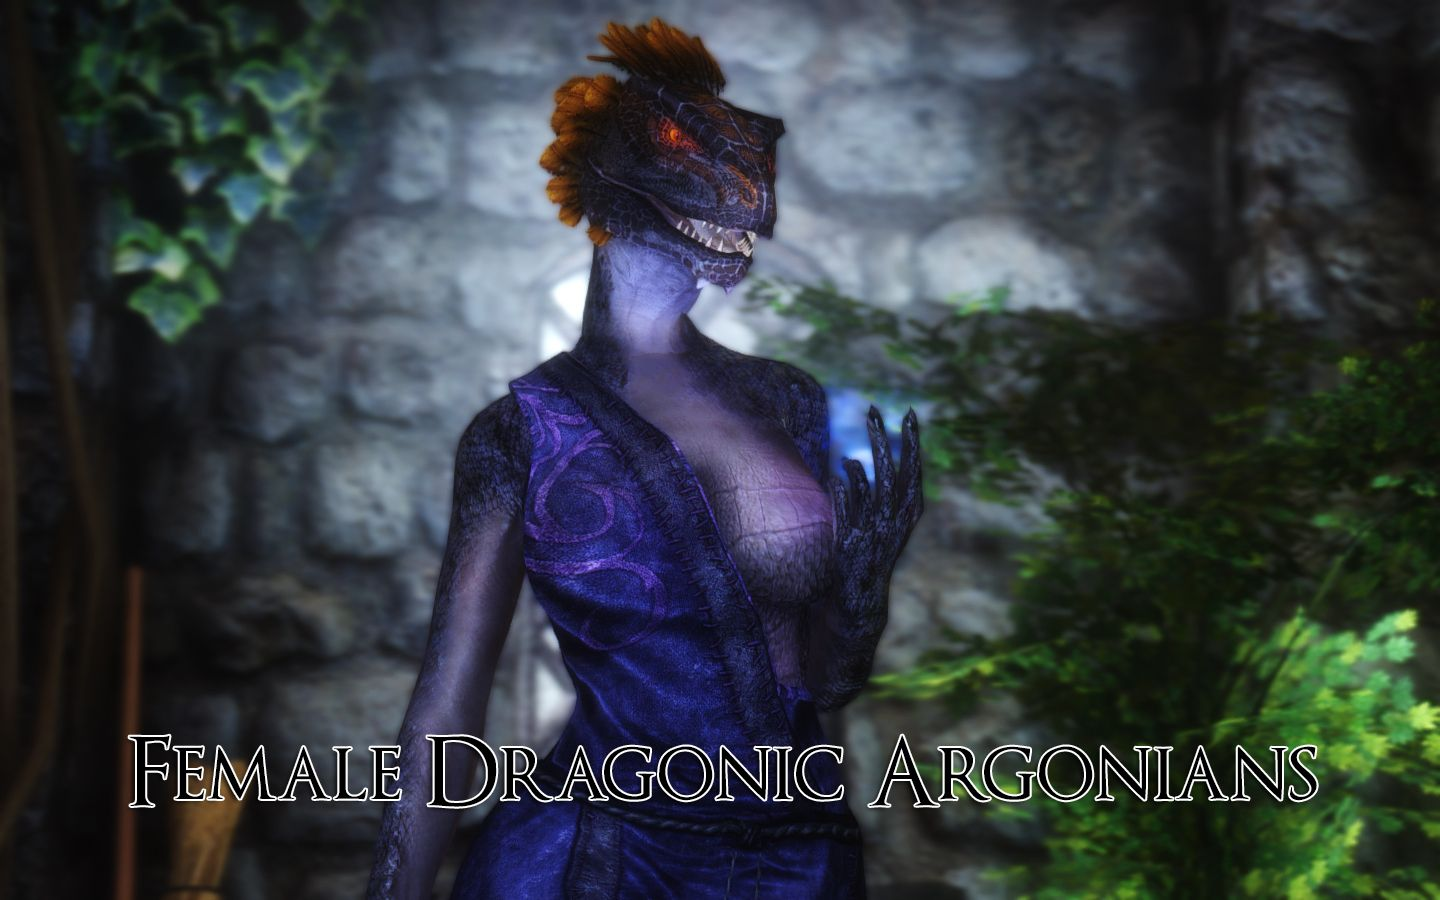 Female Dragonic Argonian Textures 4k - 2k(CBBE and UNP) at Skyrim